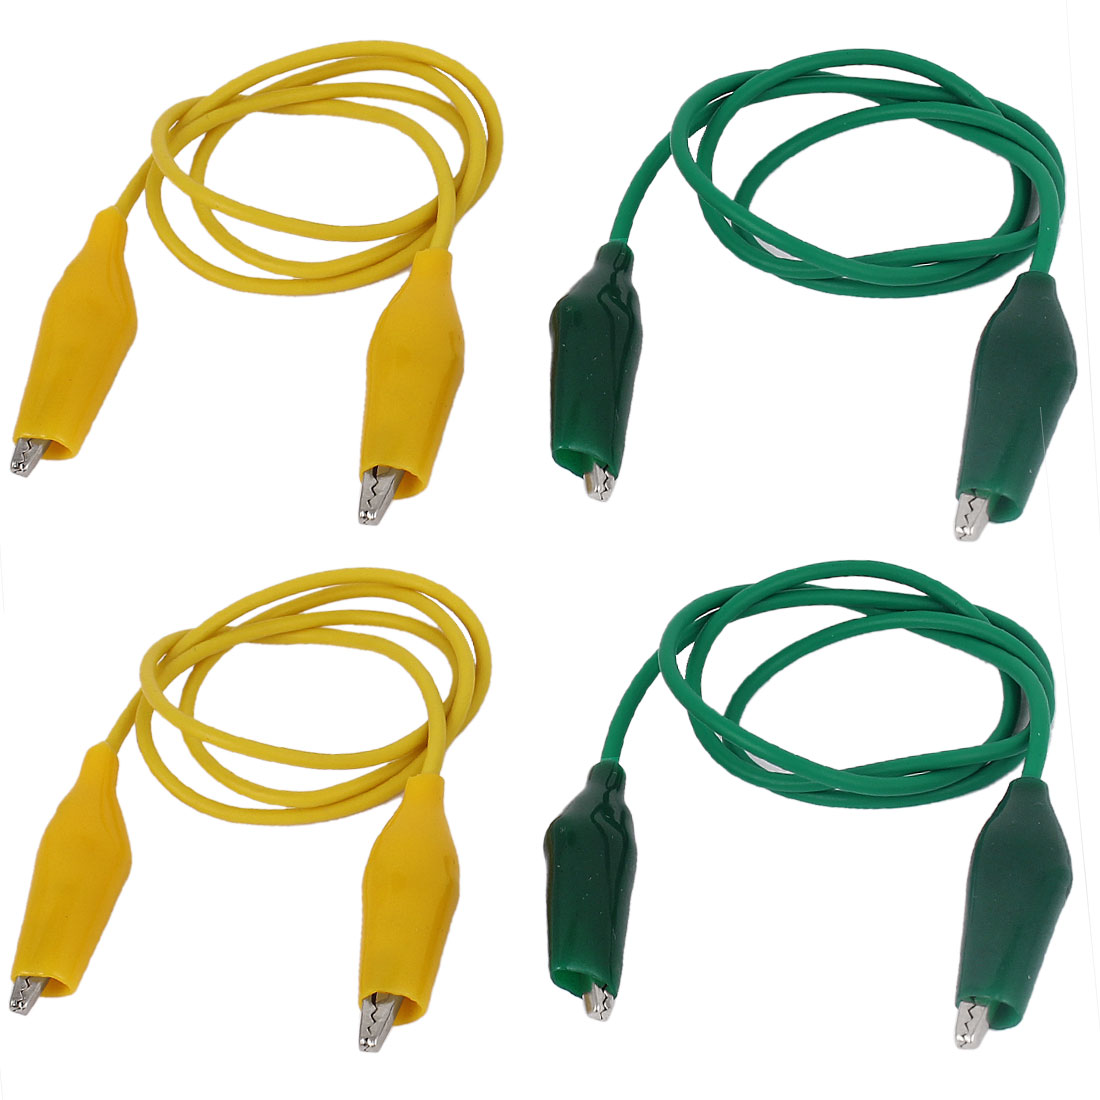 "4PCS 19"" Insulated Alligator Clip Jumper Probe Testing Work Wire Yellow Green"